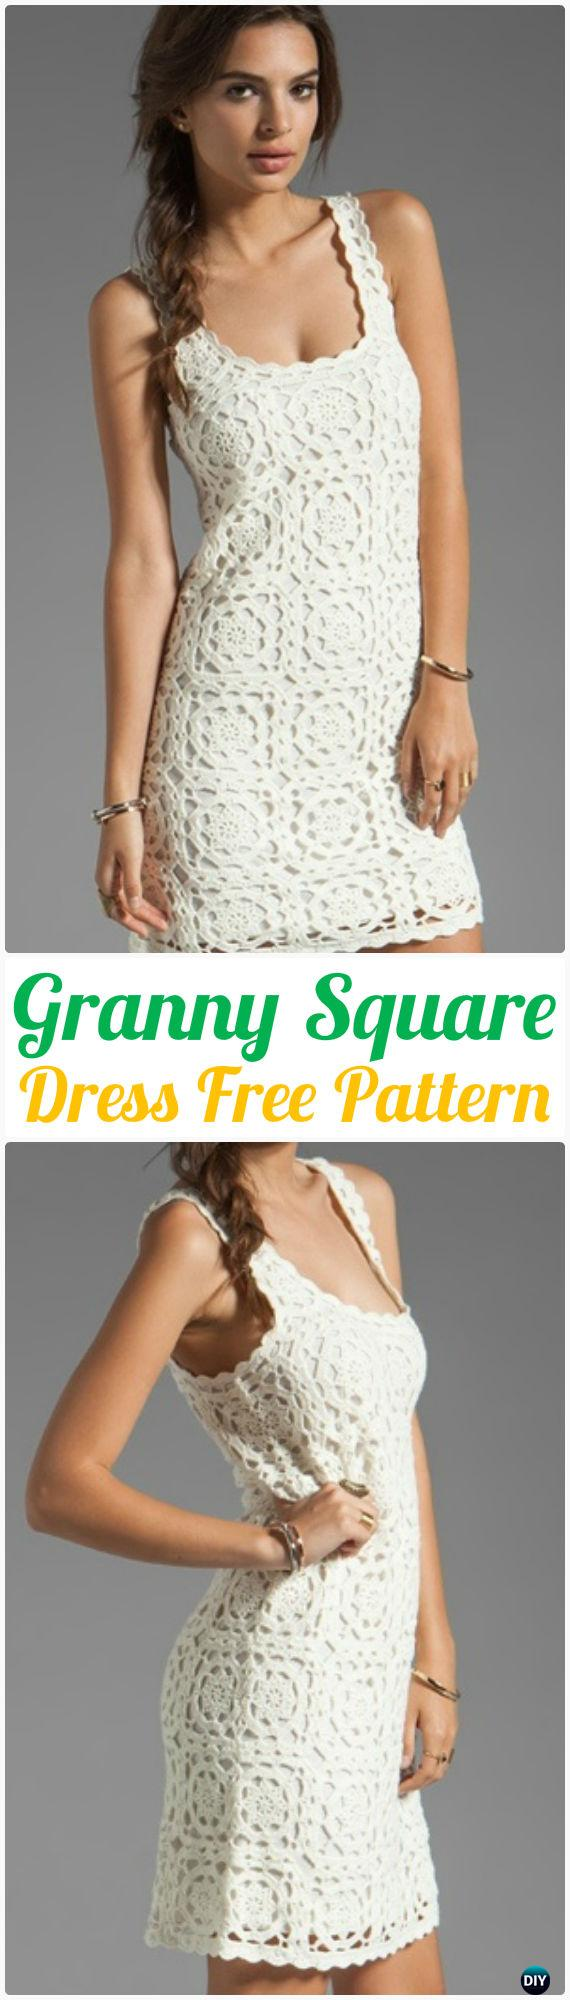 Crochet Joie Elida Overlay Granny Square Dress Free Pattern - Crochet Women Dress Free Patterns